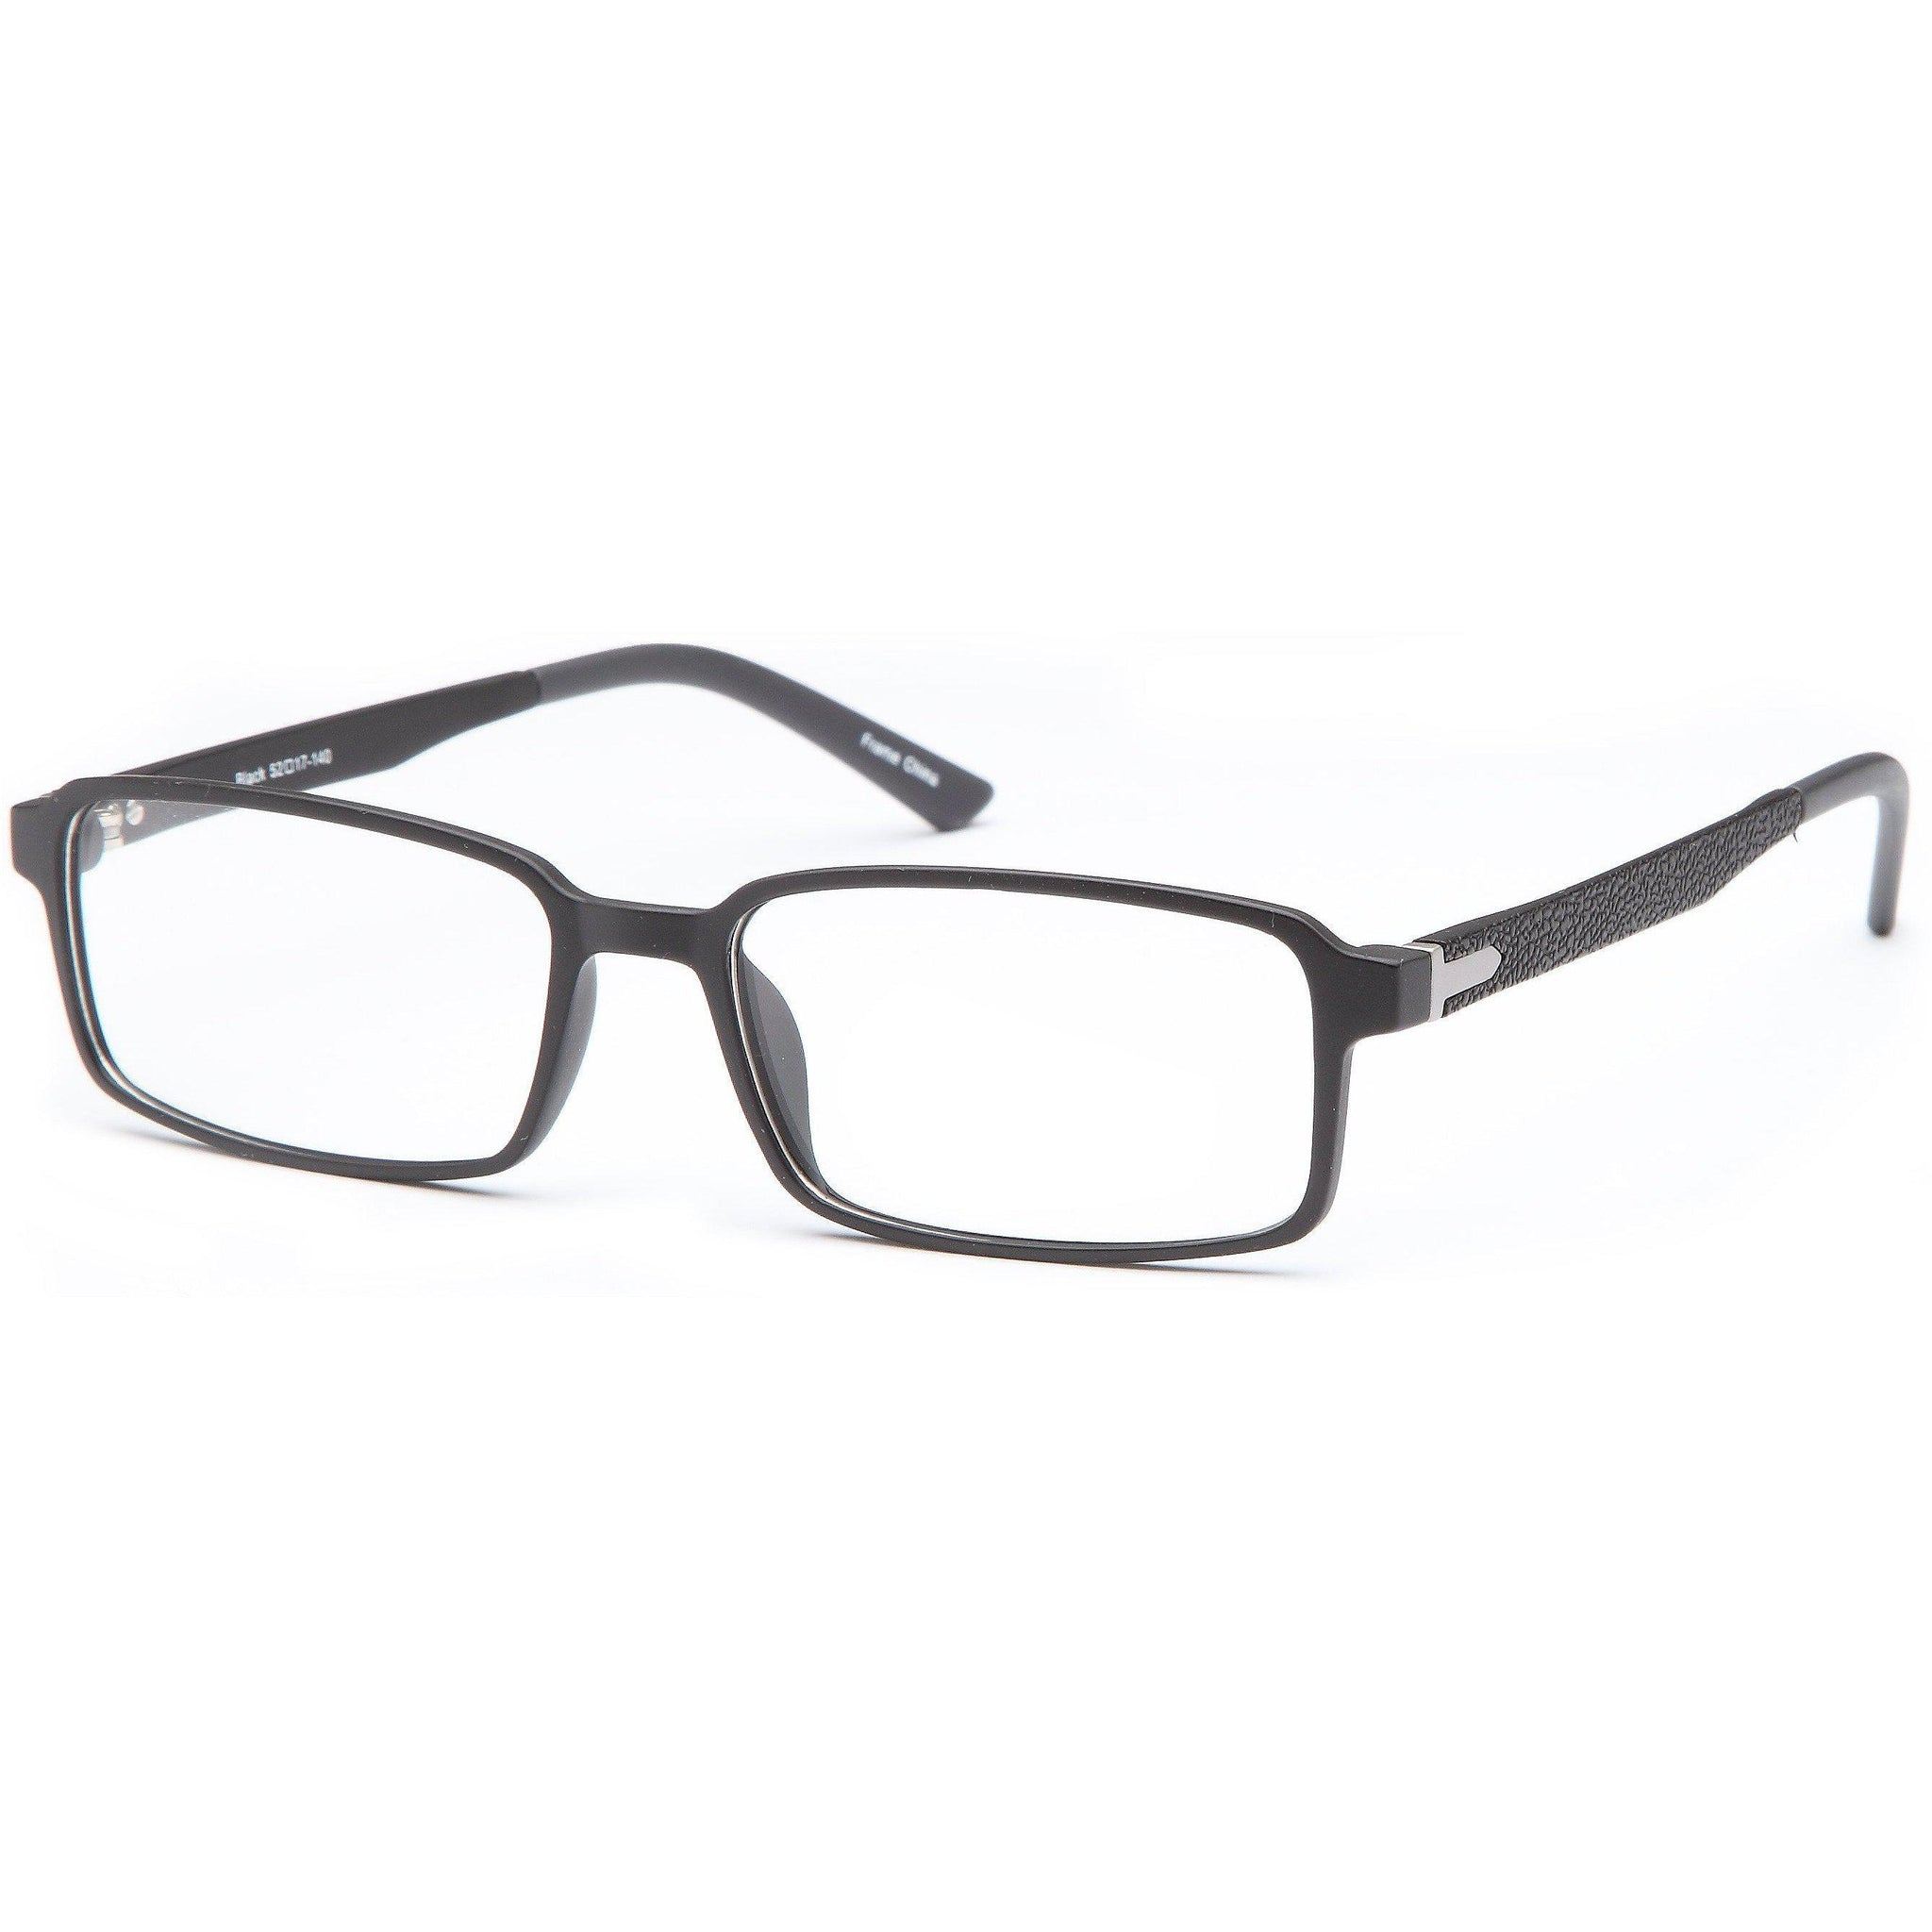 The Icons Prescription Glasses ADAM Eyeglasses Frame